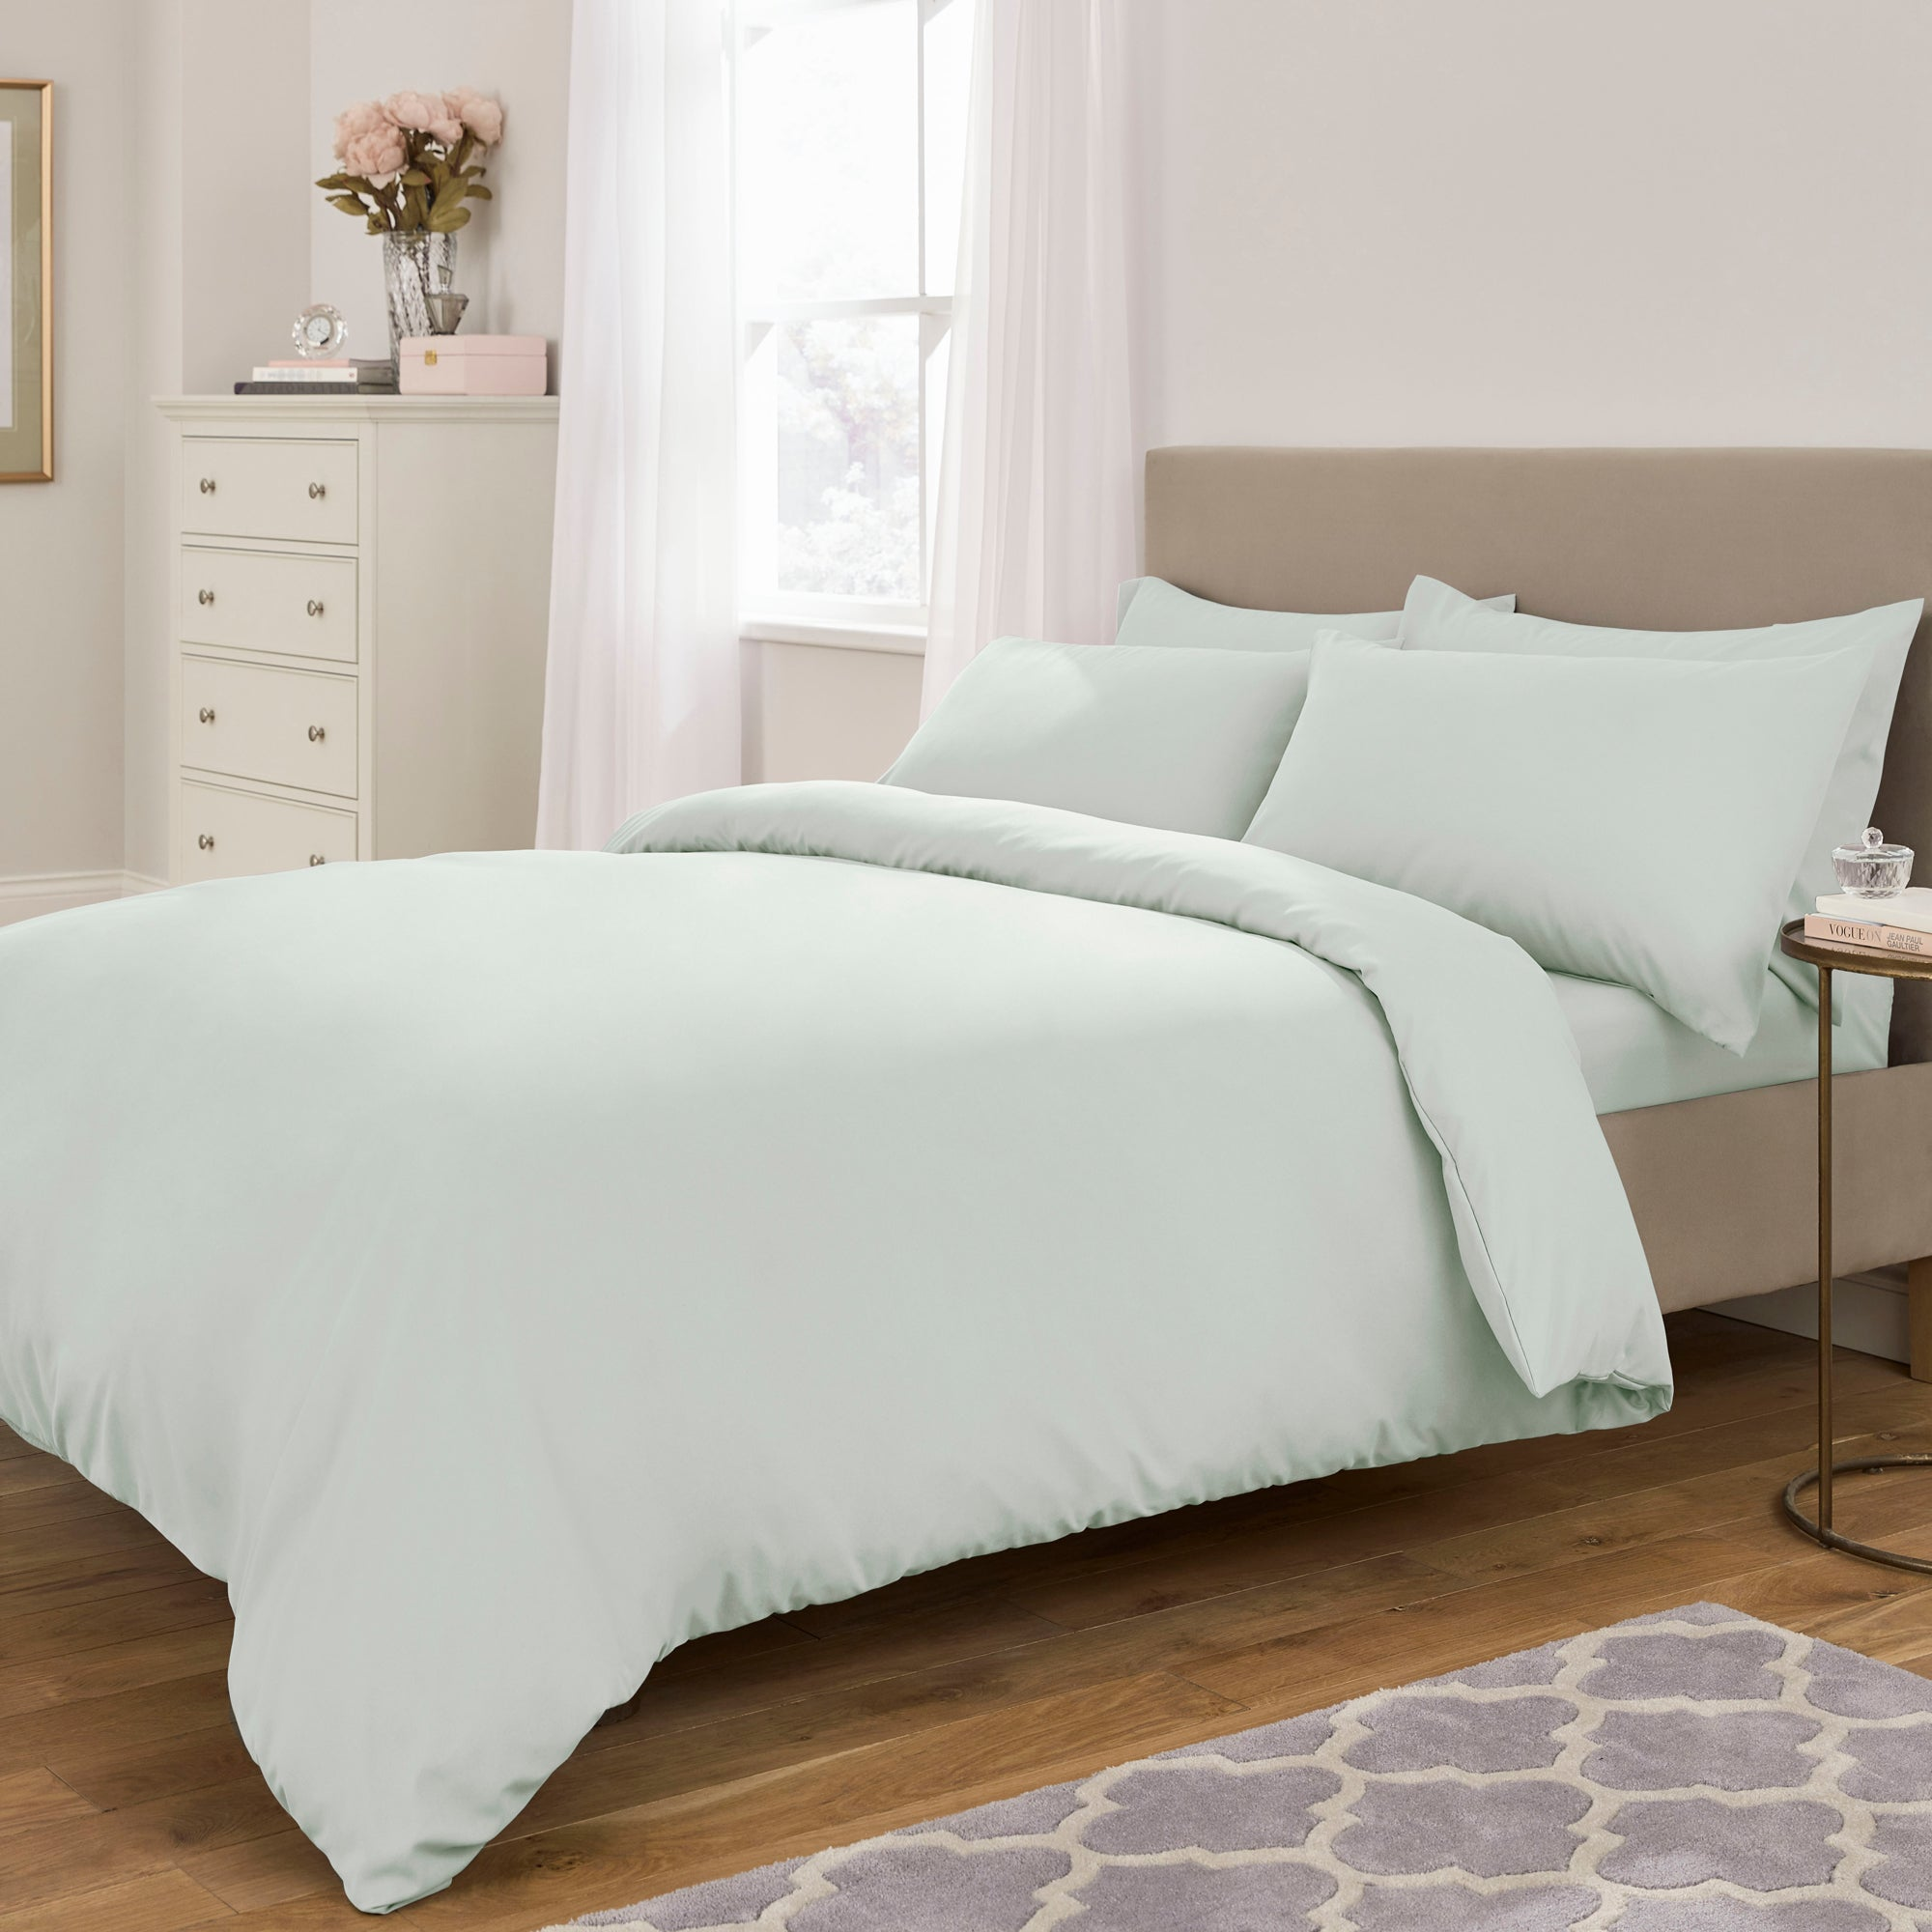 Fogarty Soft Touch Duck Egg Bed Linen Collection